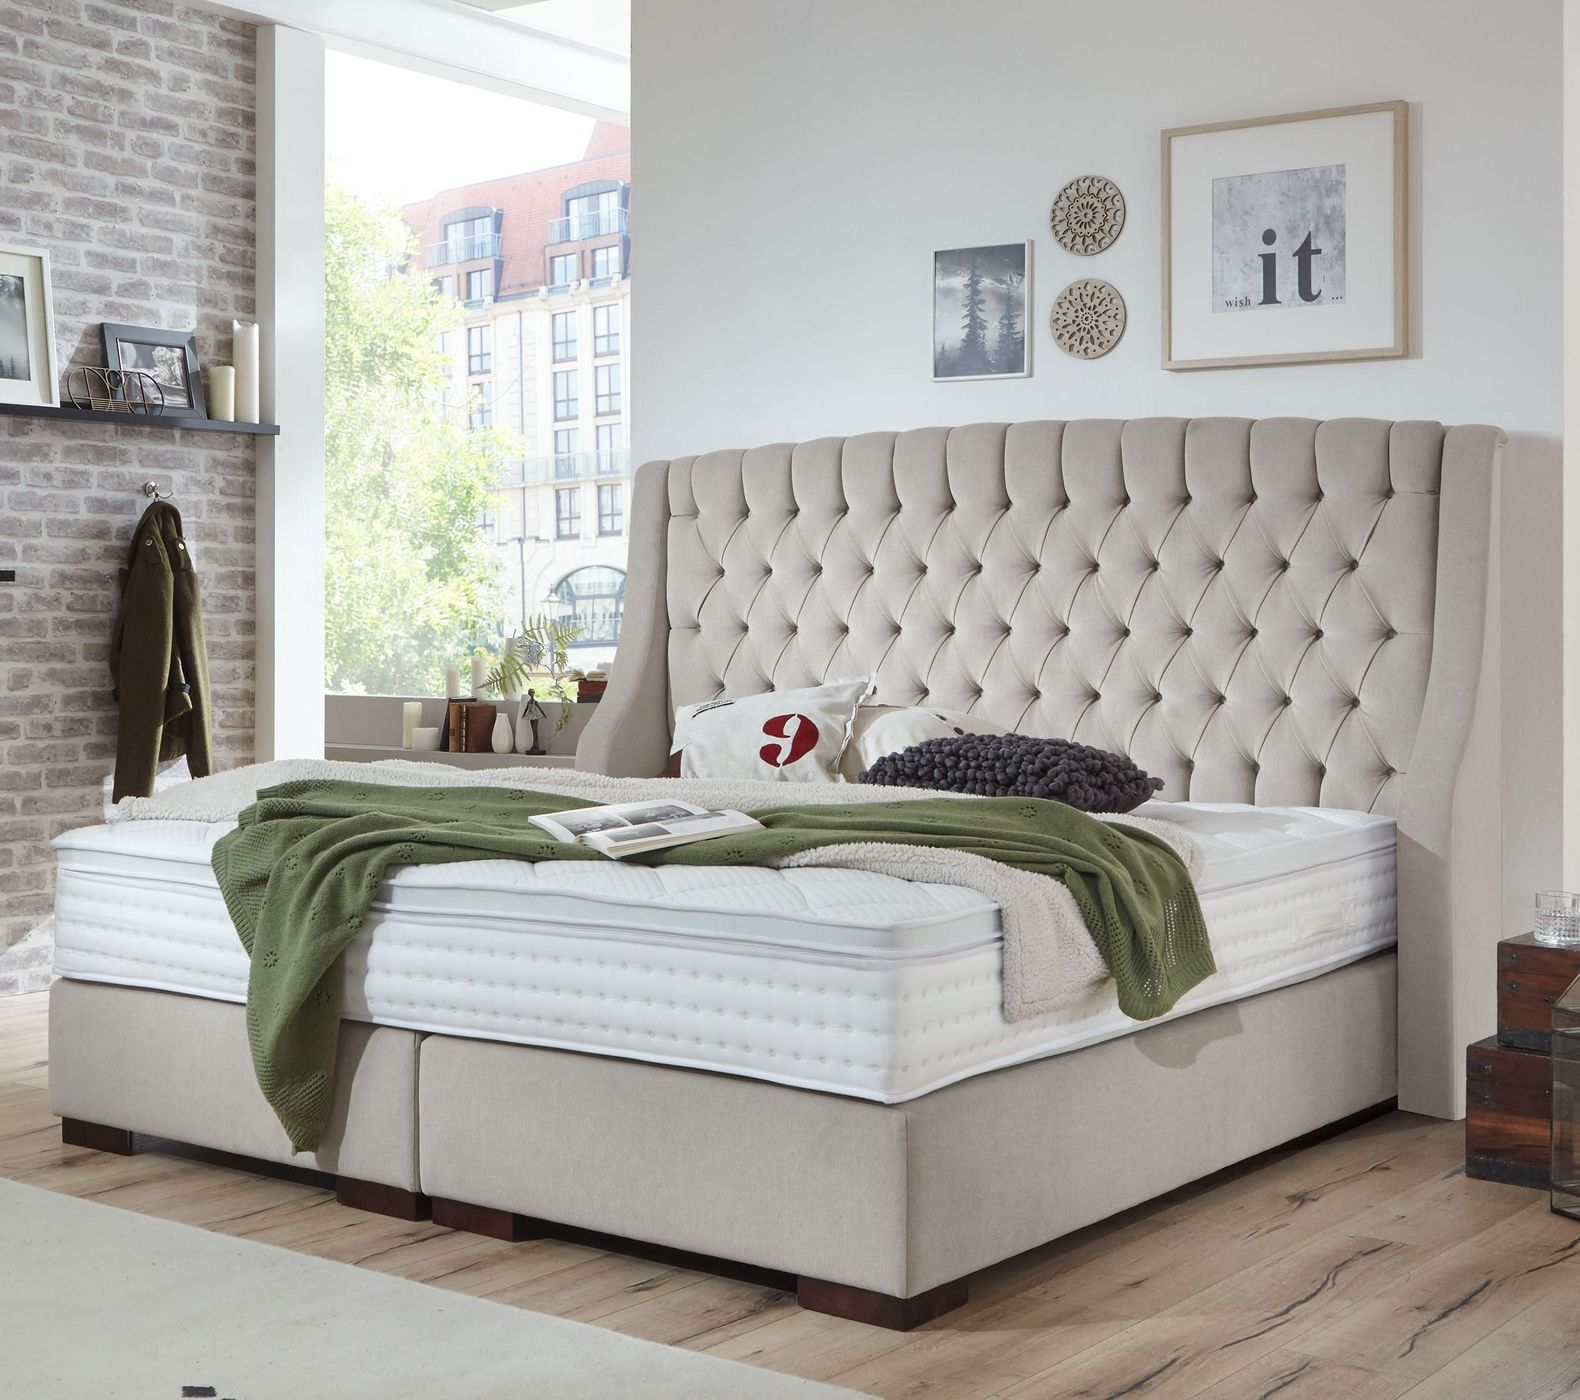 chesterfield bett mit boxspring system empire select bridgeport. Black Bedroom Furniture Sets. Home Design Ideas